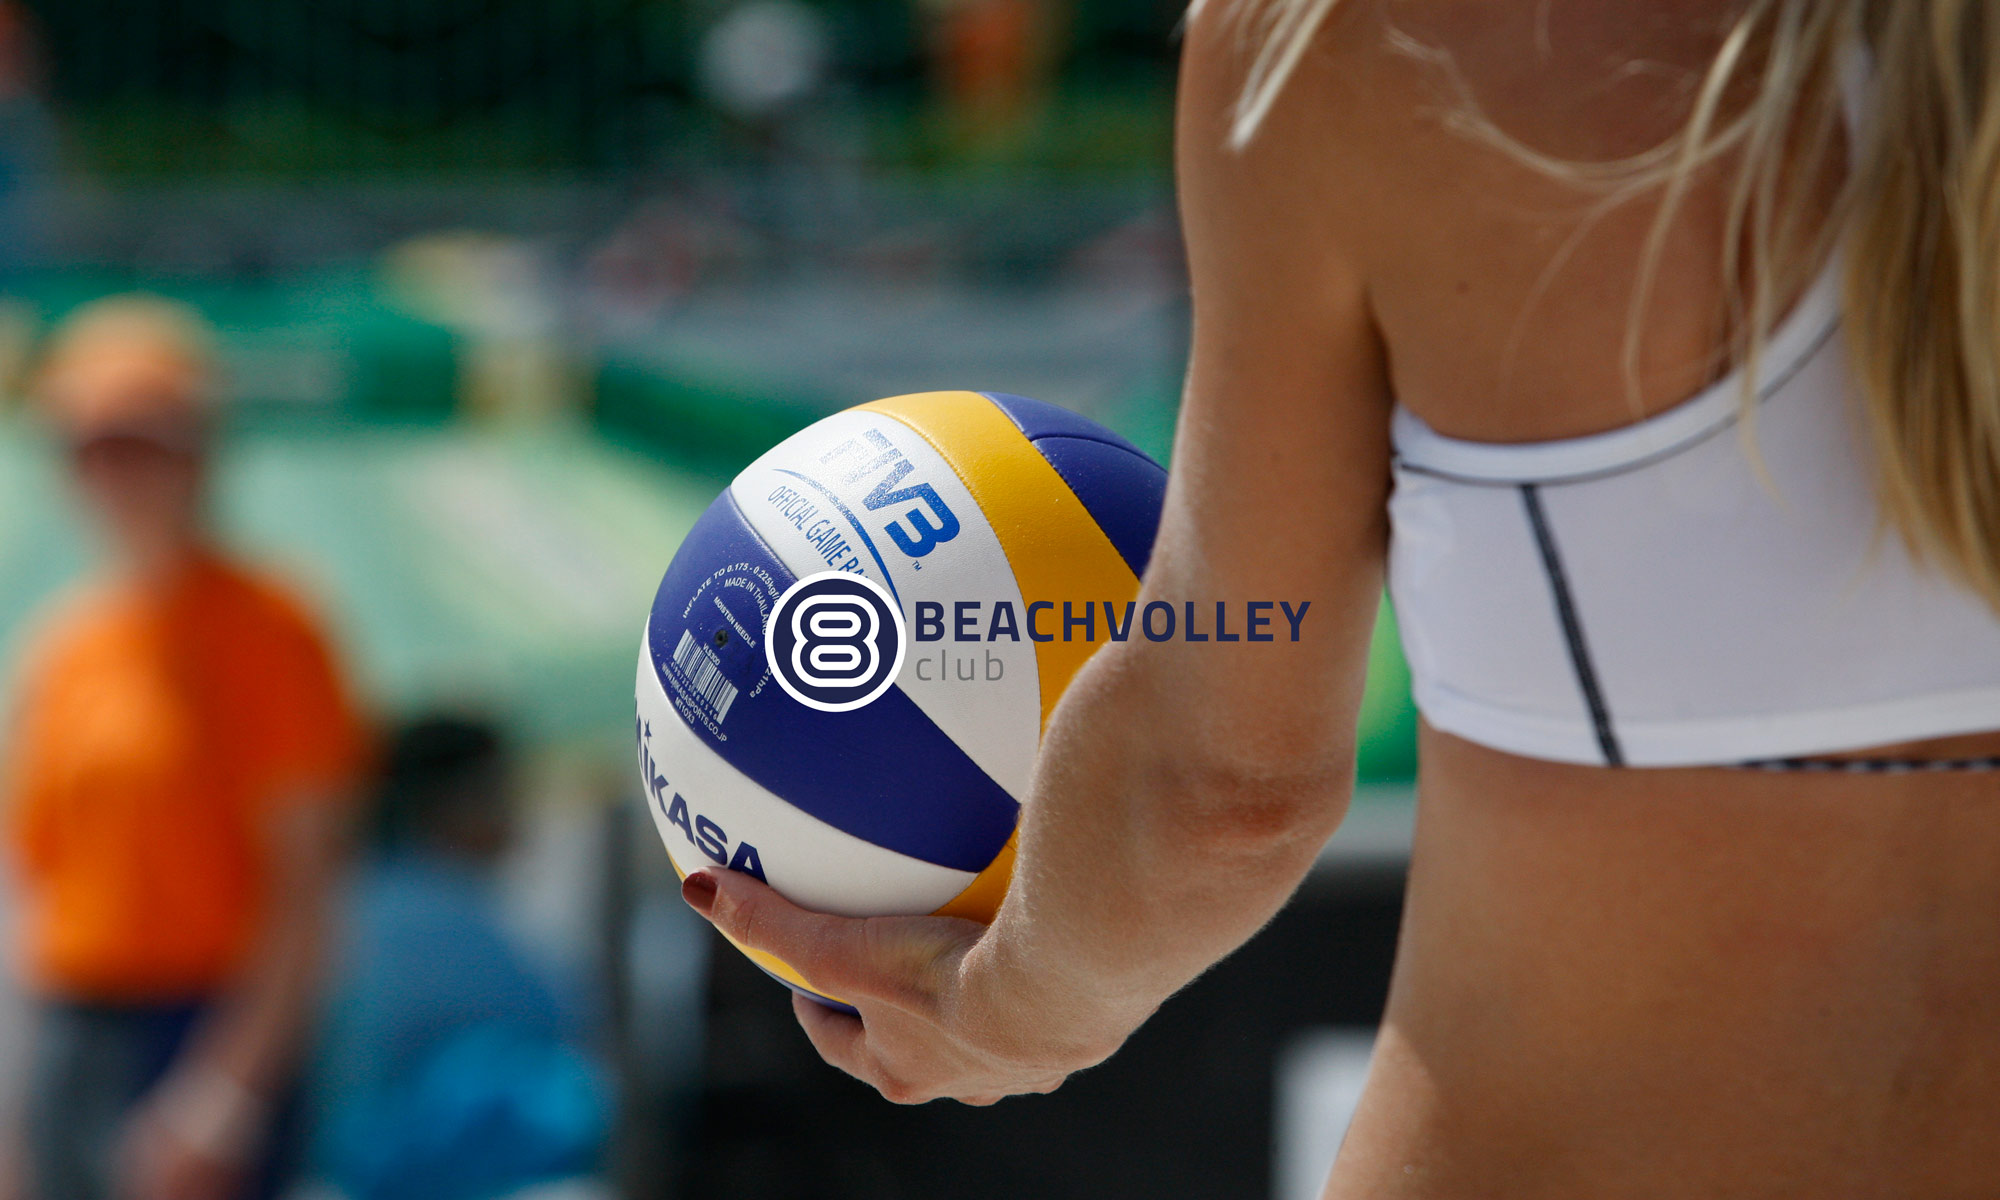 08 Beachvolley Club